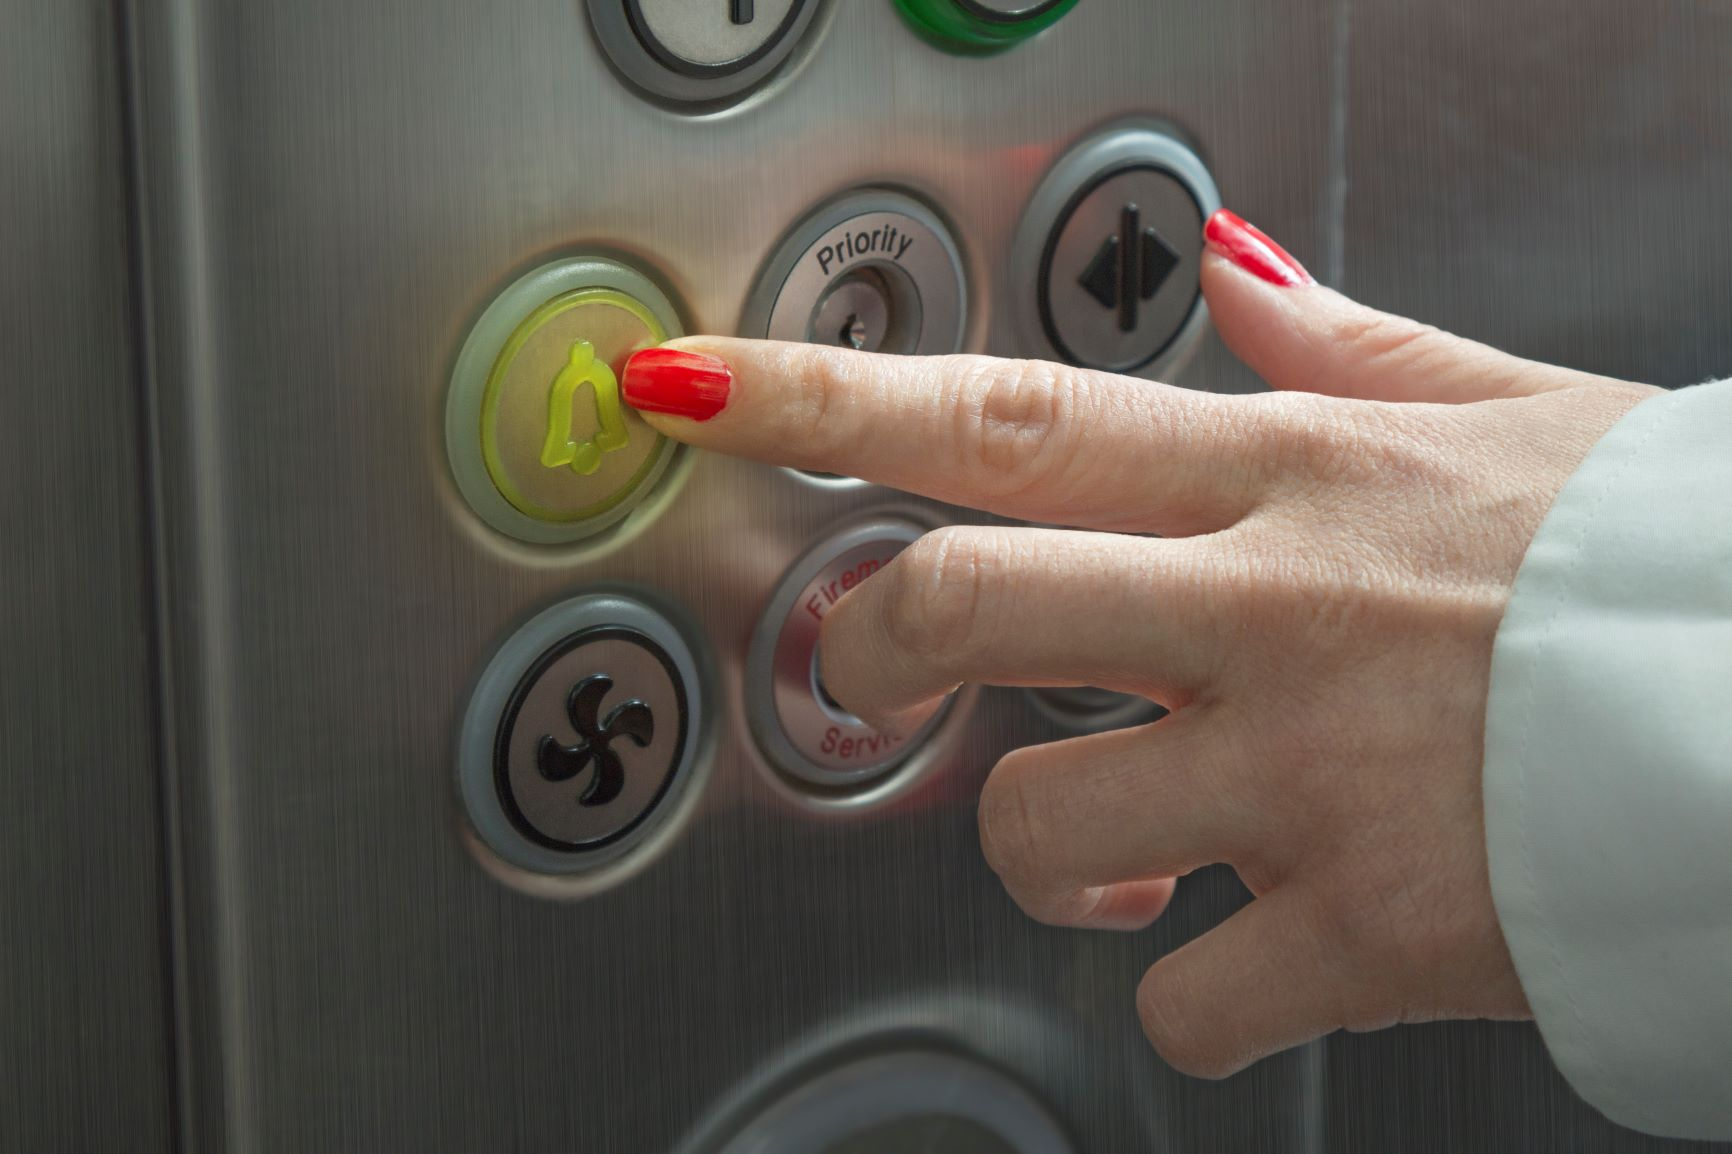 How To Handle Getting Stuck In an Elevator